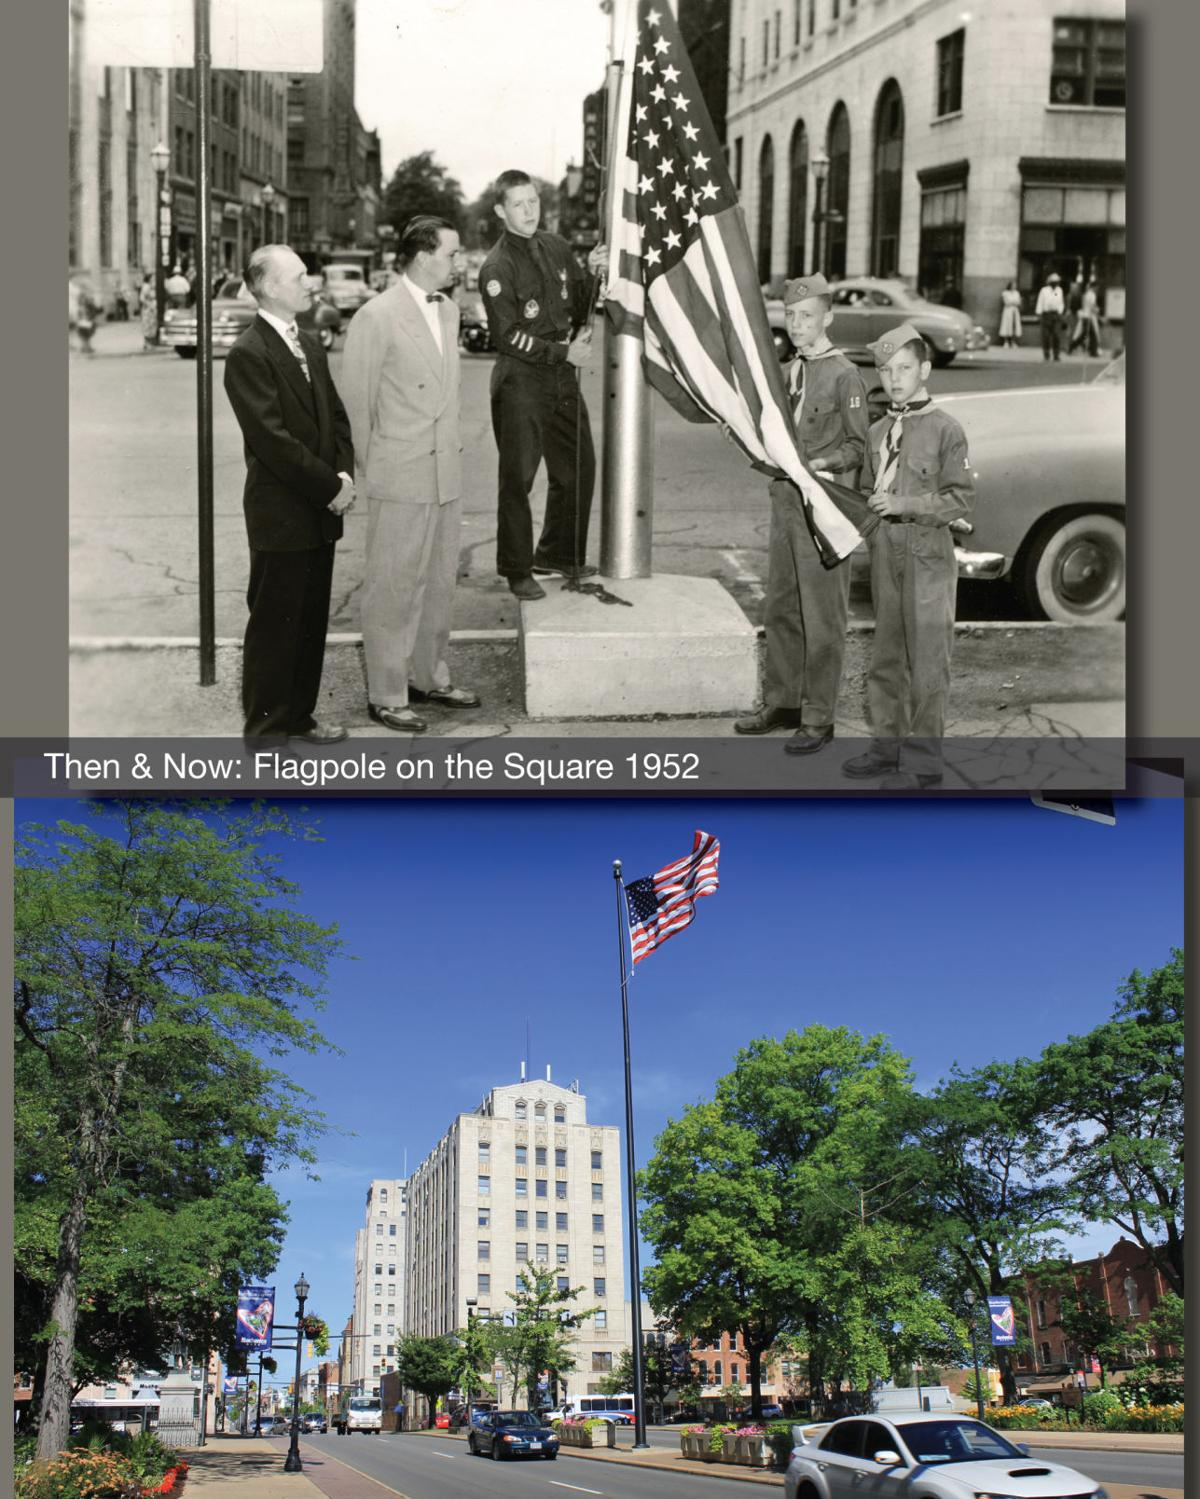 Then & Now: The flagpole on the Square 1952